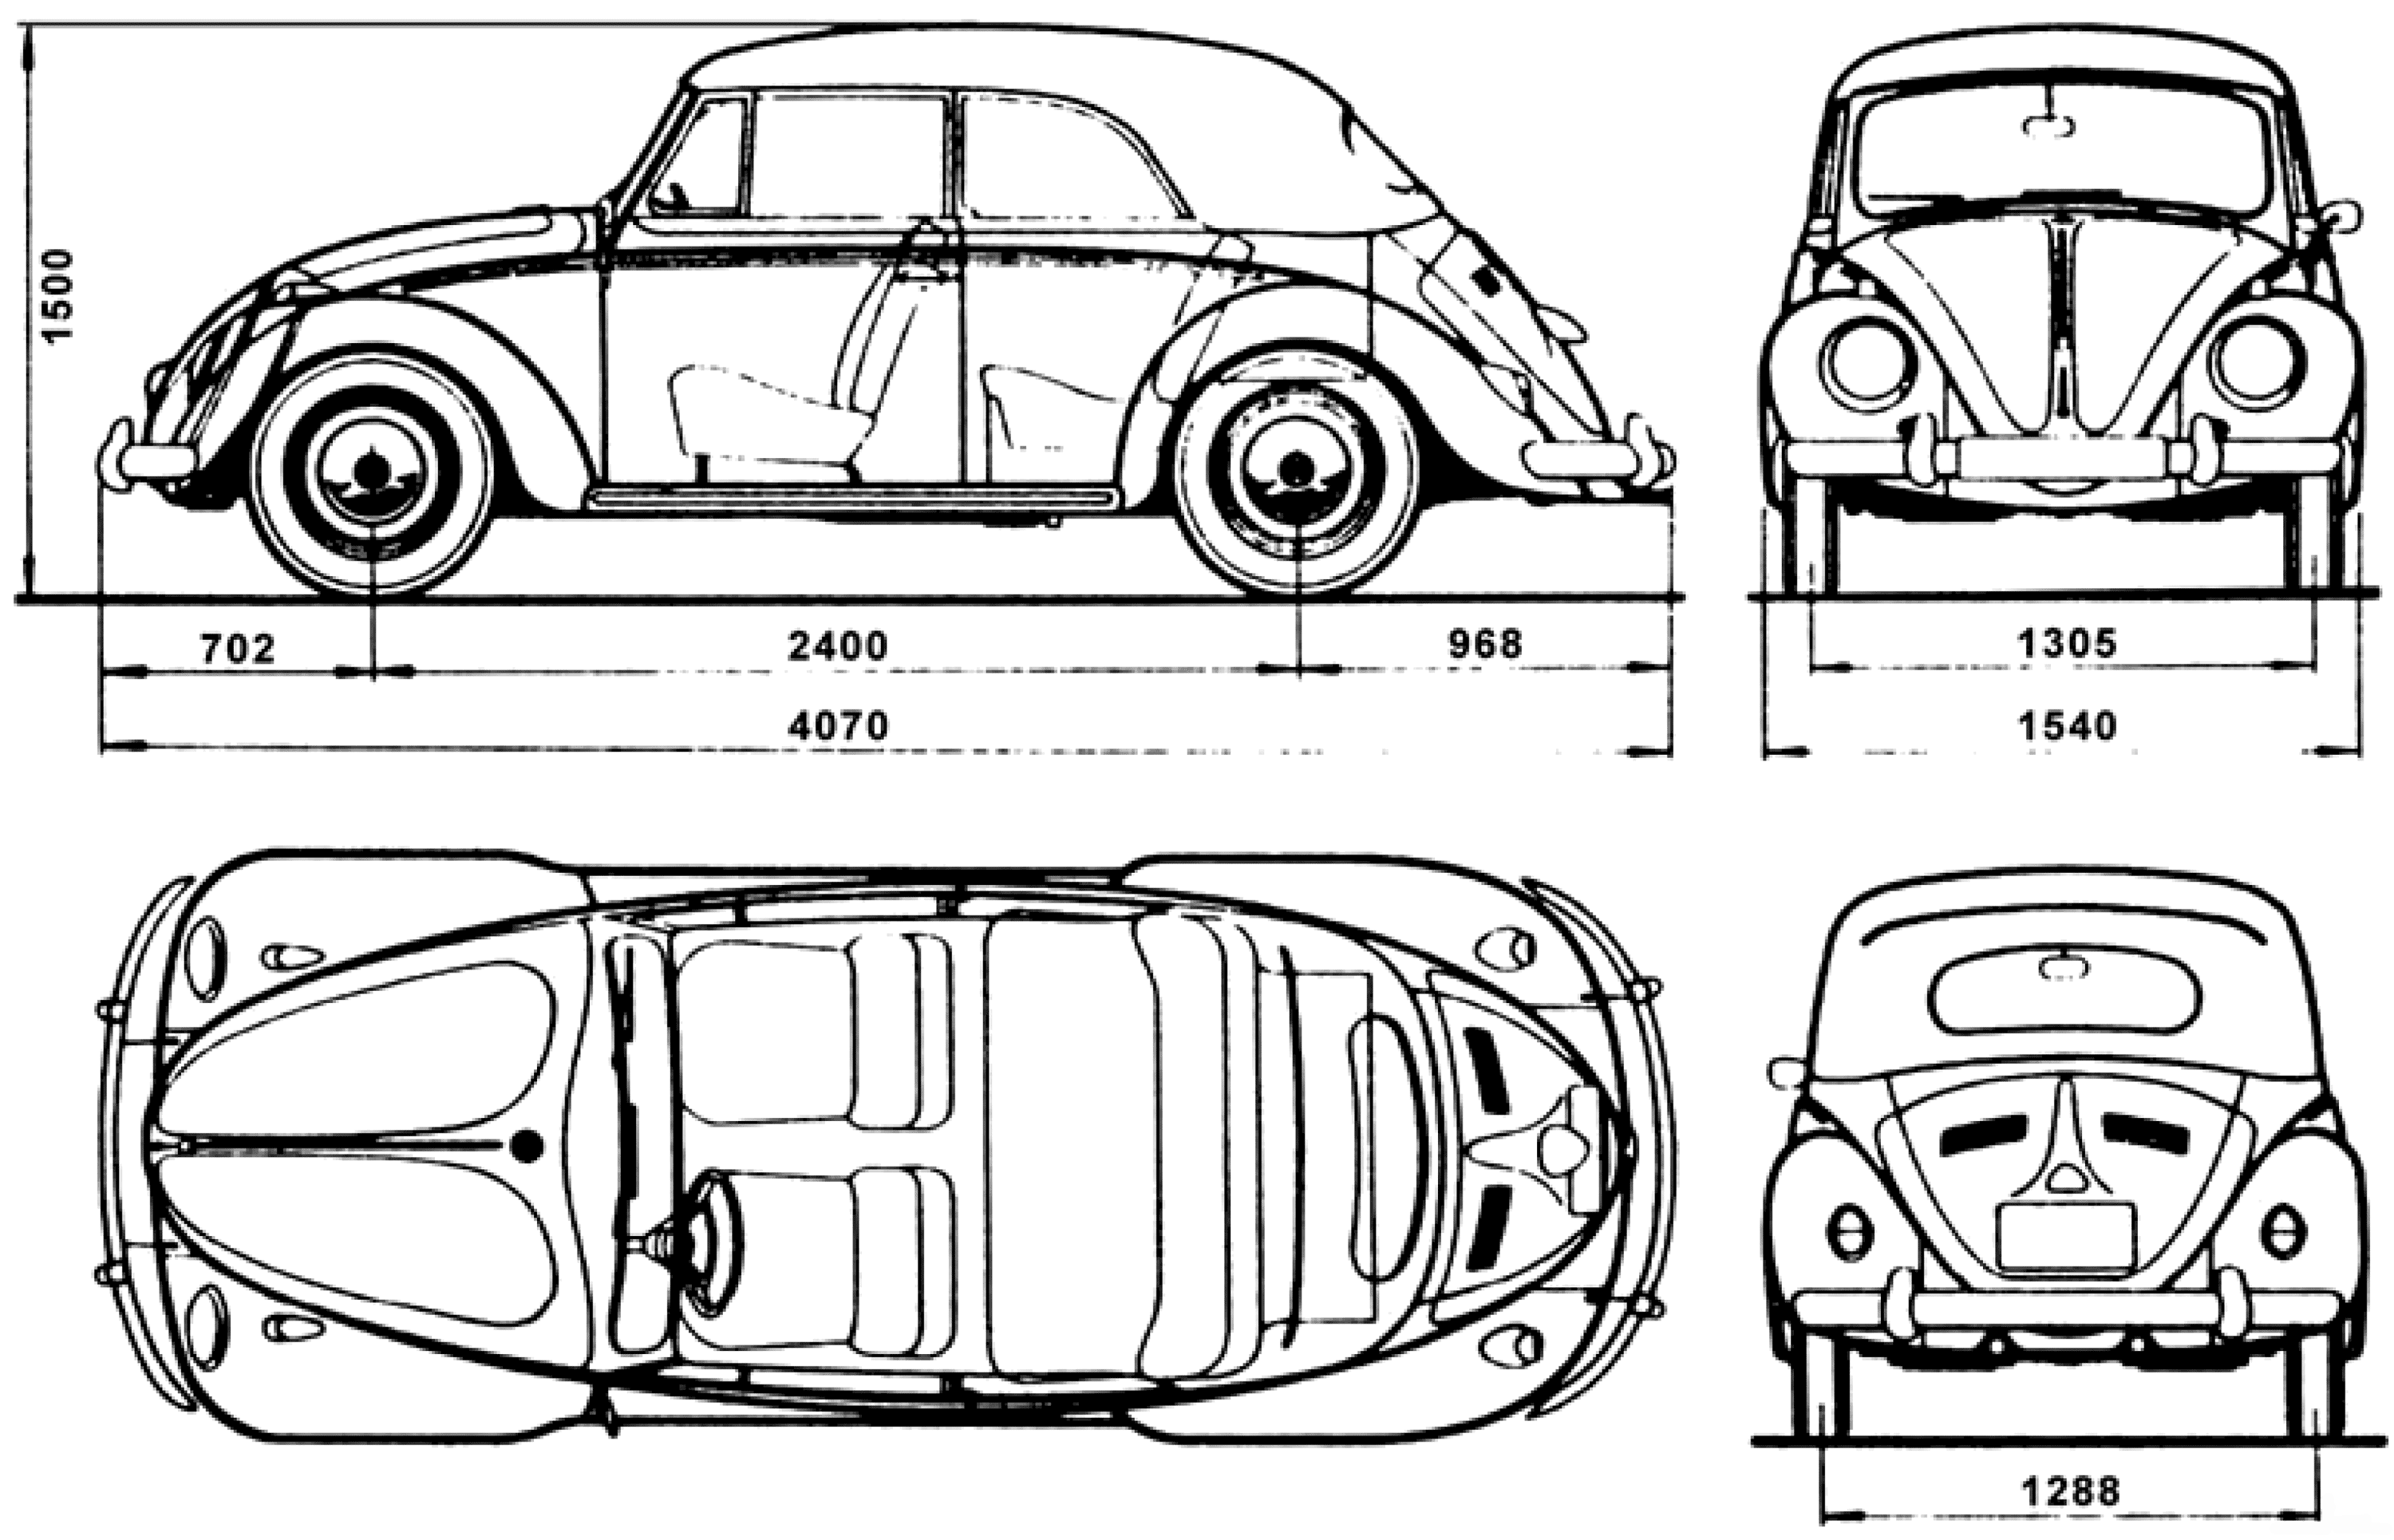 volkswagen beetle blueprint download free blueprint for. Black Bedroom Furniture Sets. Home Design Ideas